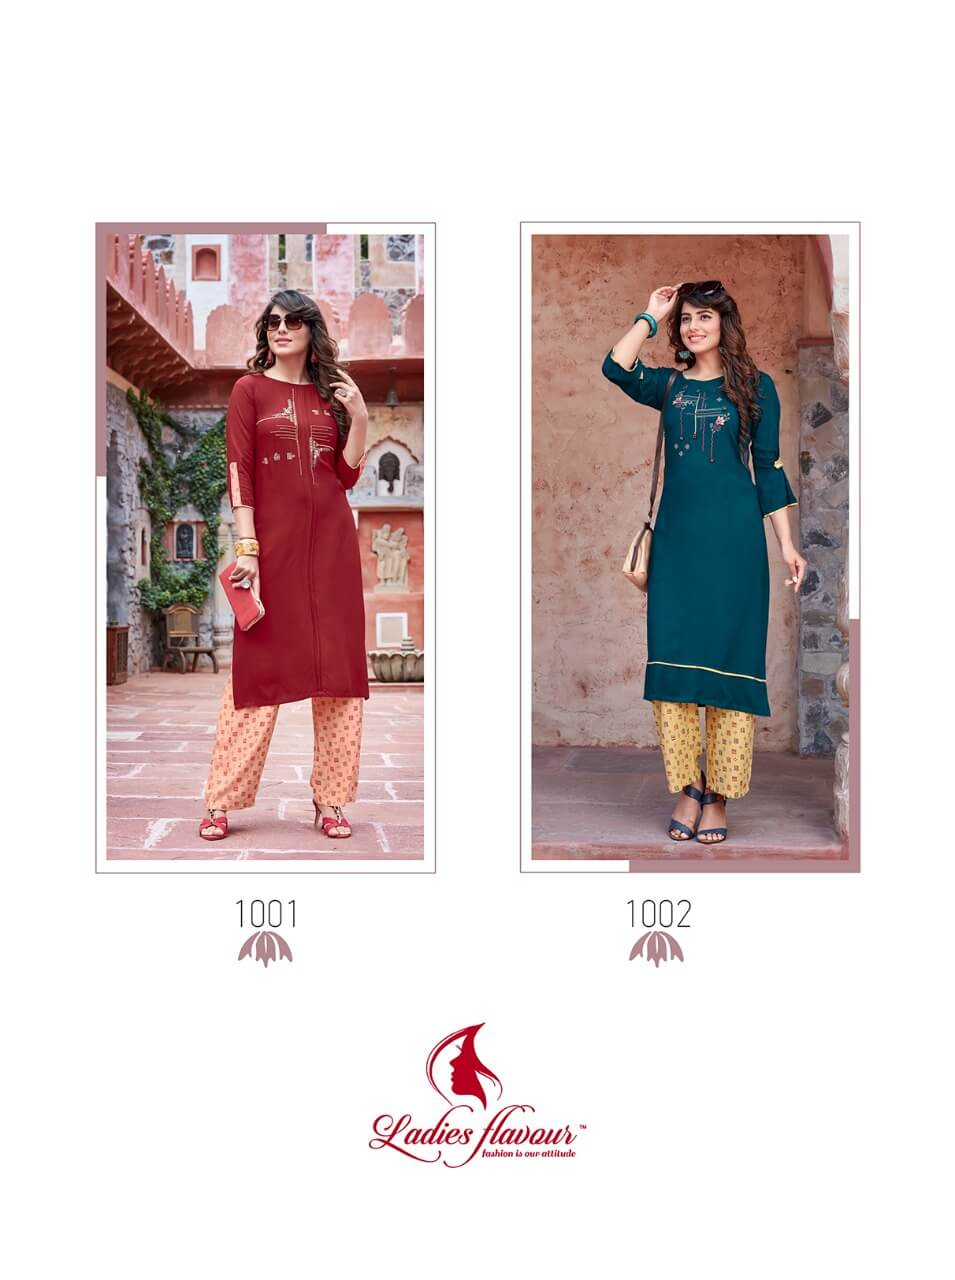 Ladies Flavour Runwey collection 5